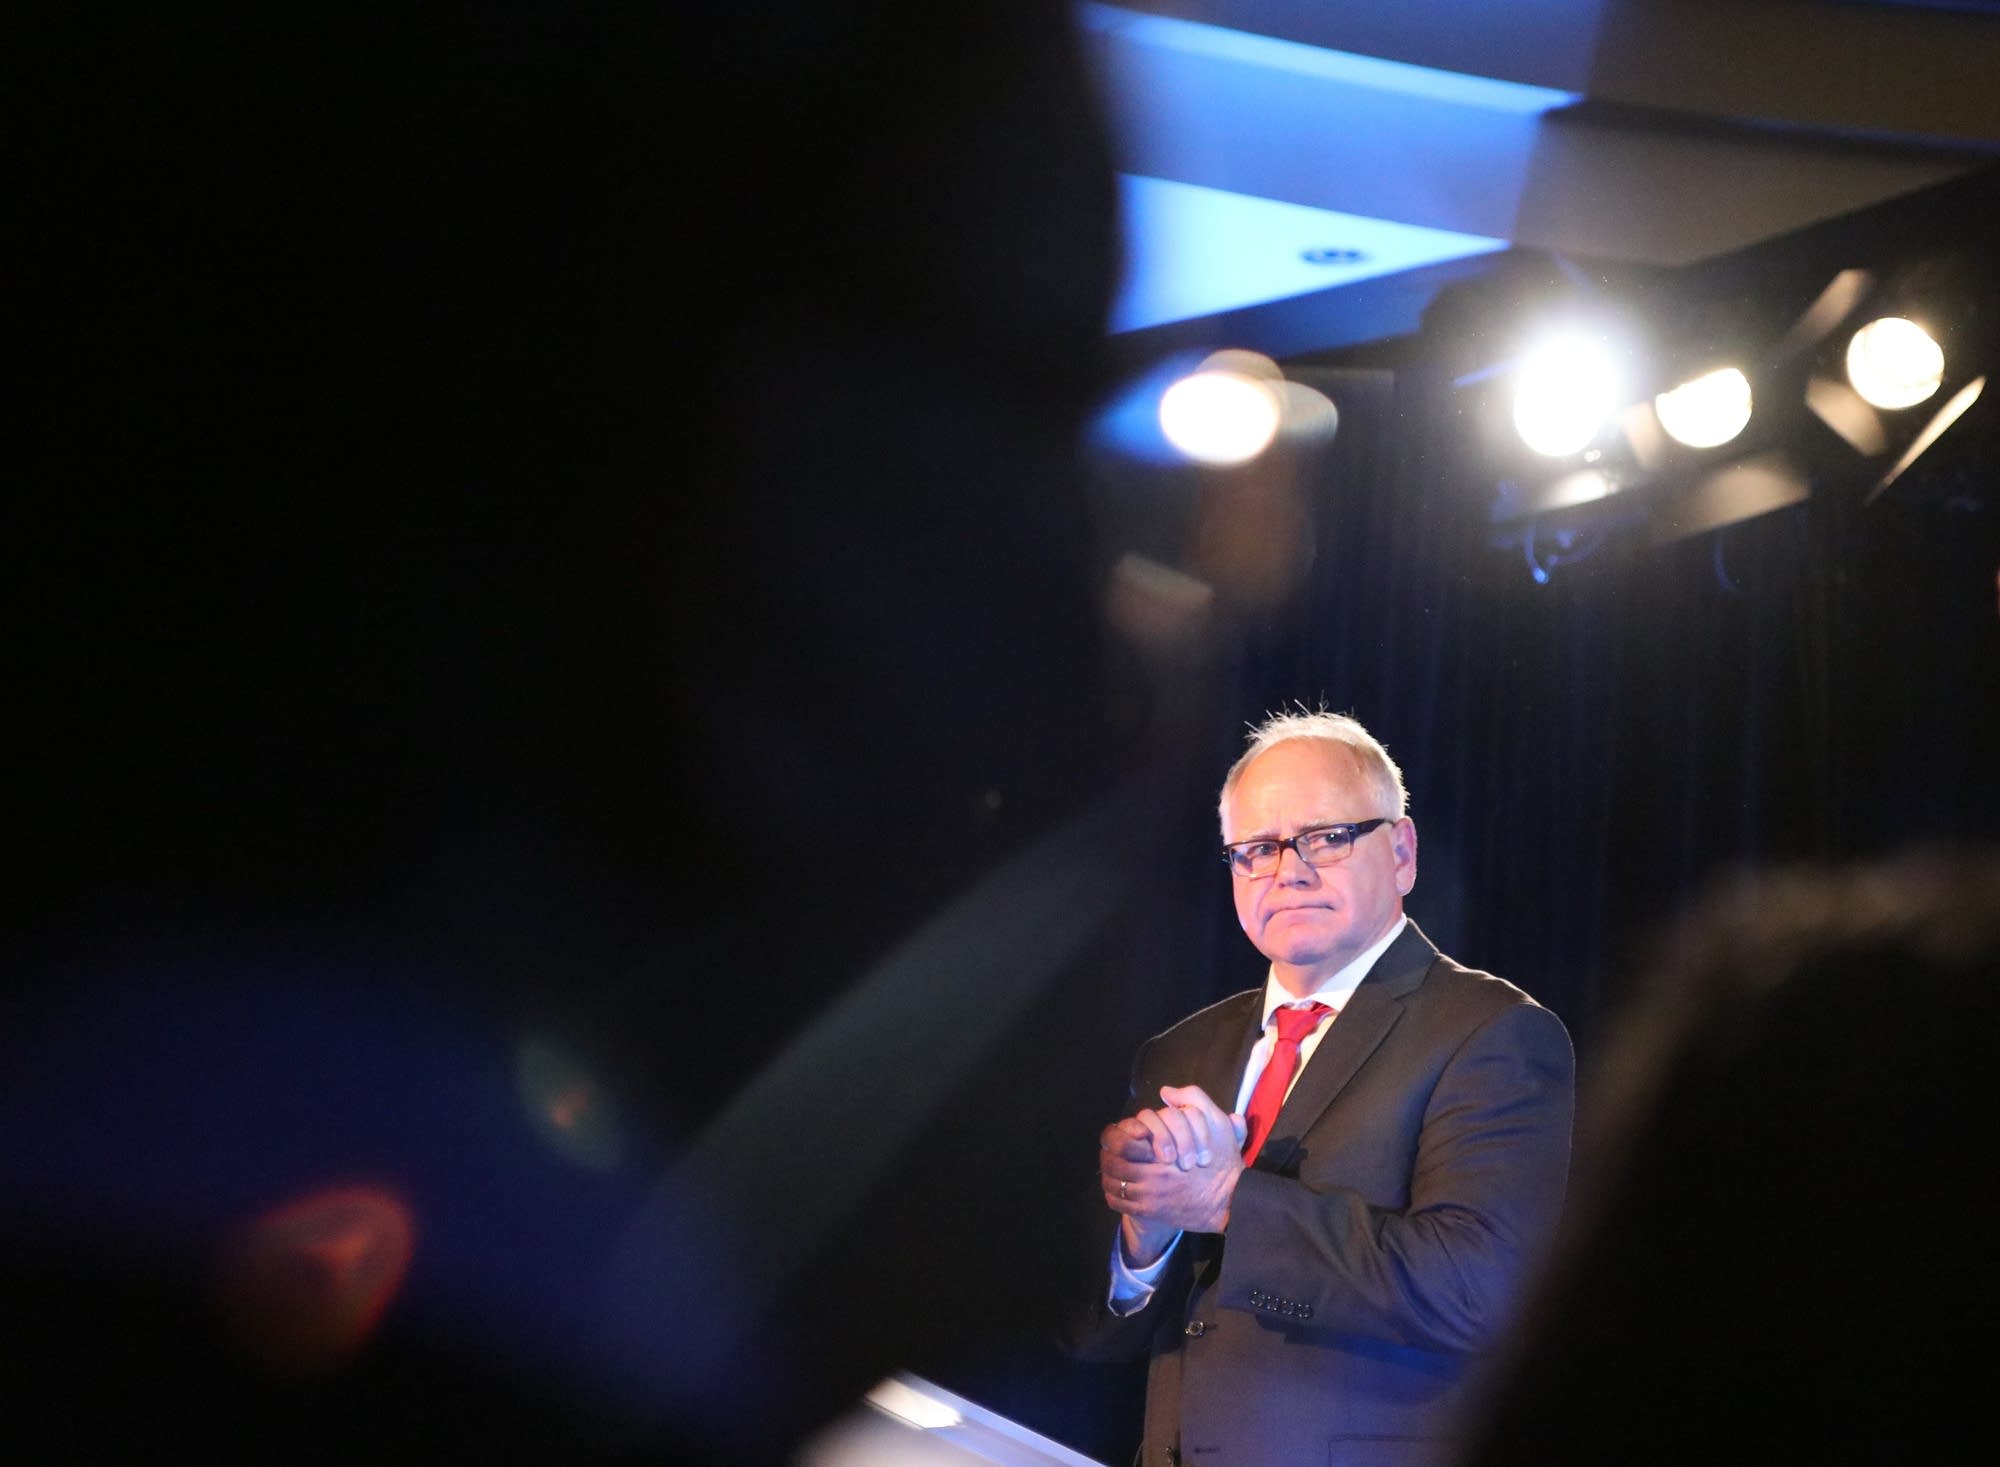 Tim Walz addresses the crowd in St. Paul.